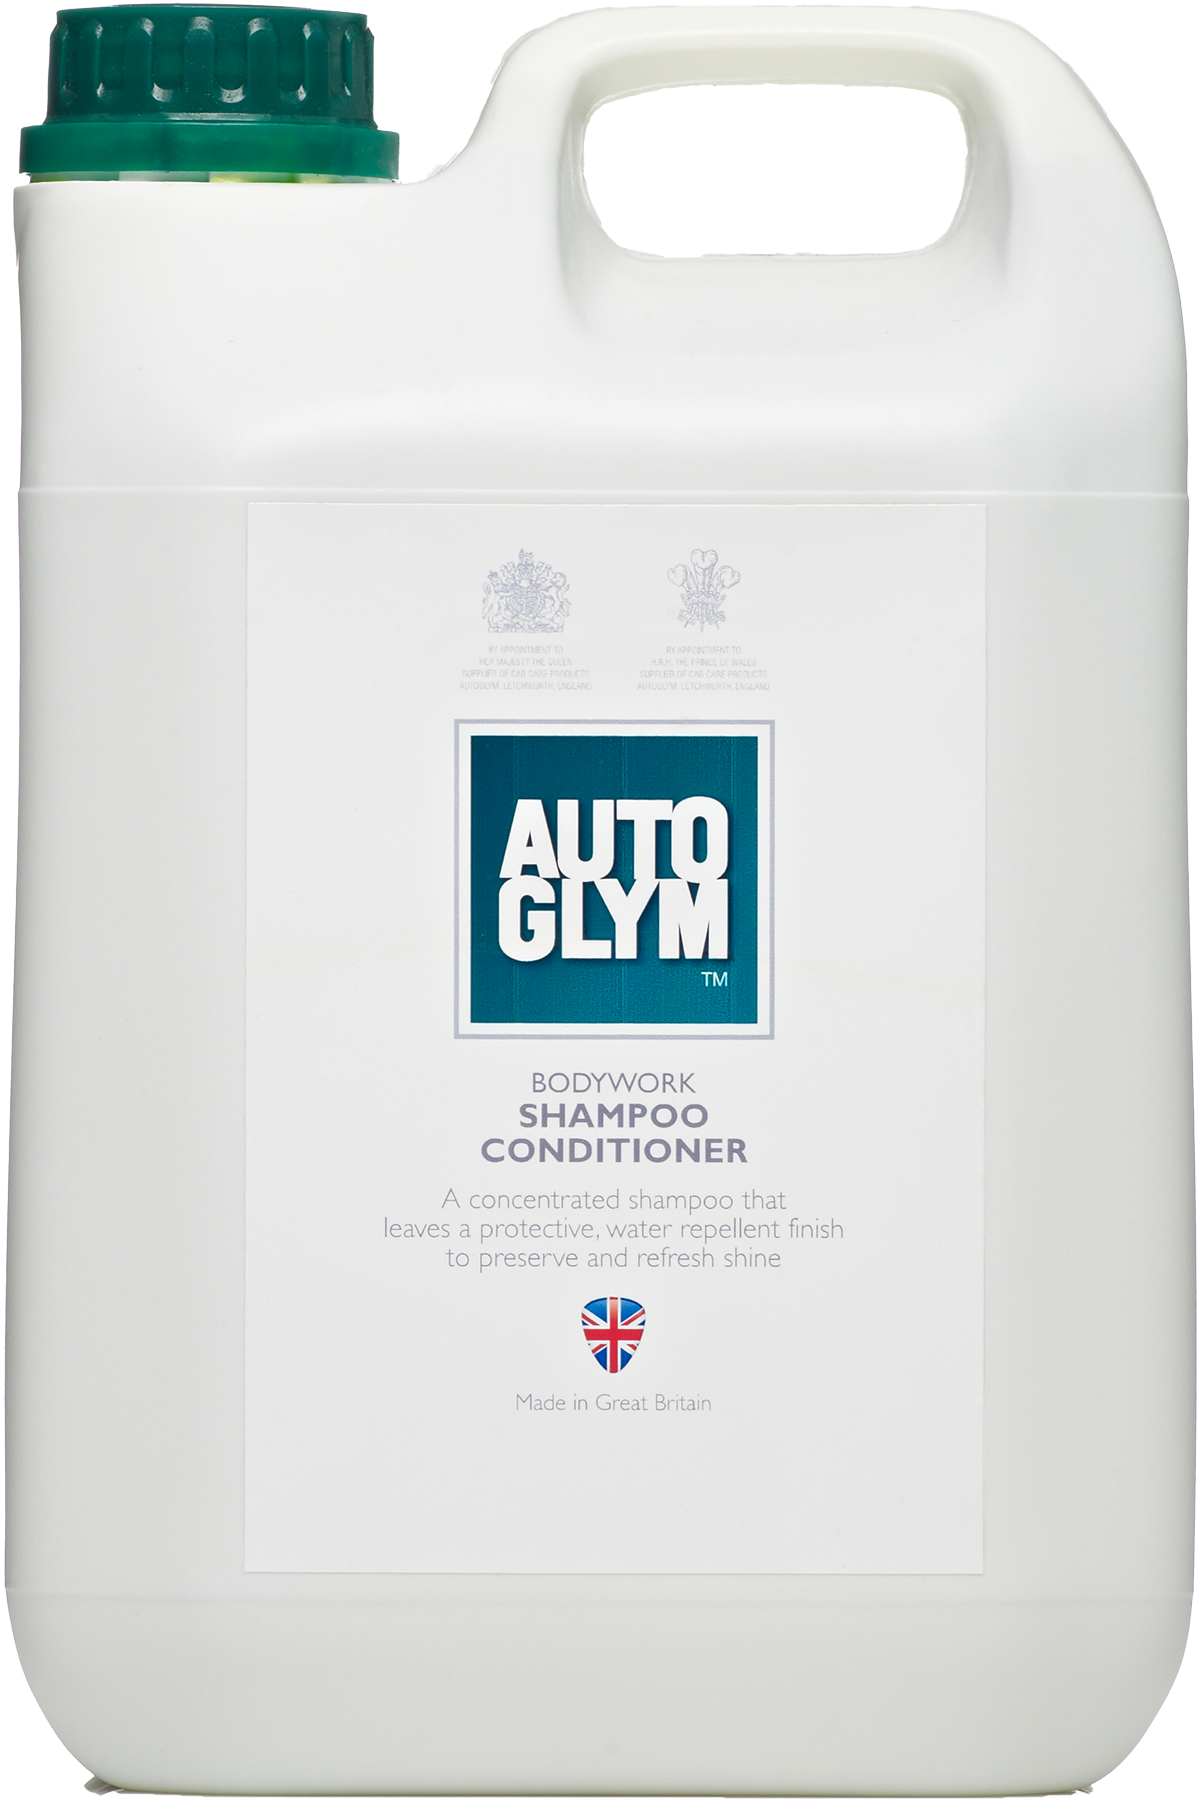 New! Autoglym Bodywork Shampoo Conditioner Now Available In 2.5l.